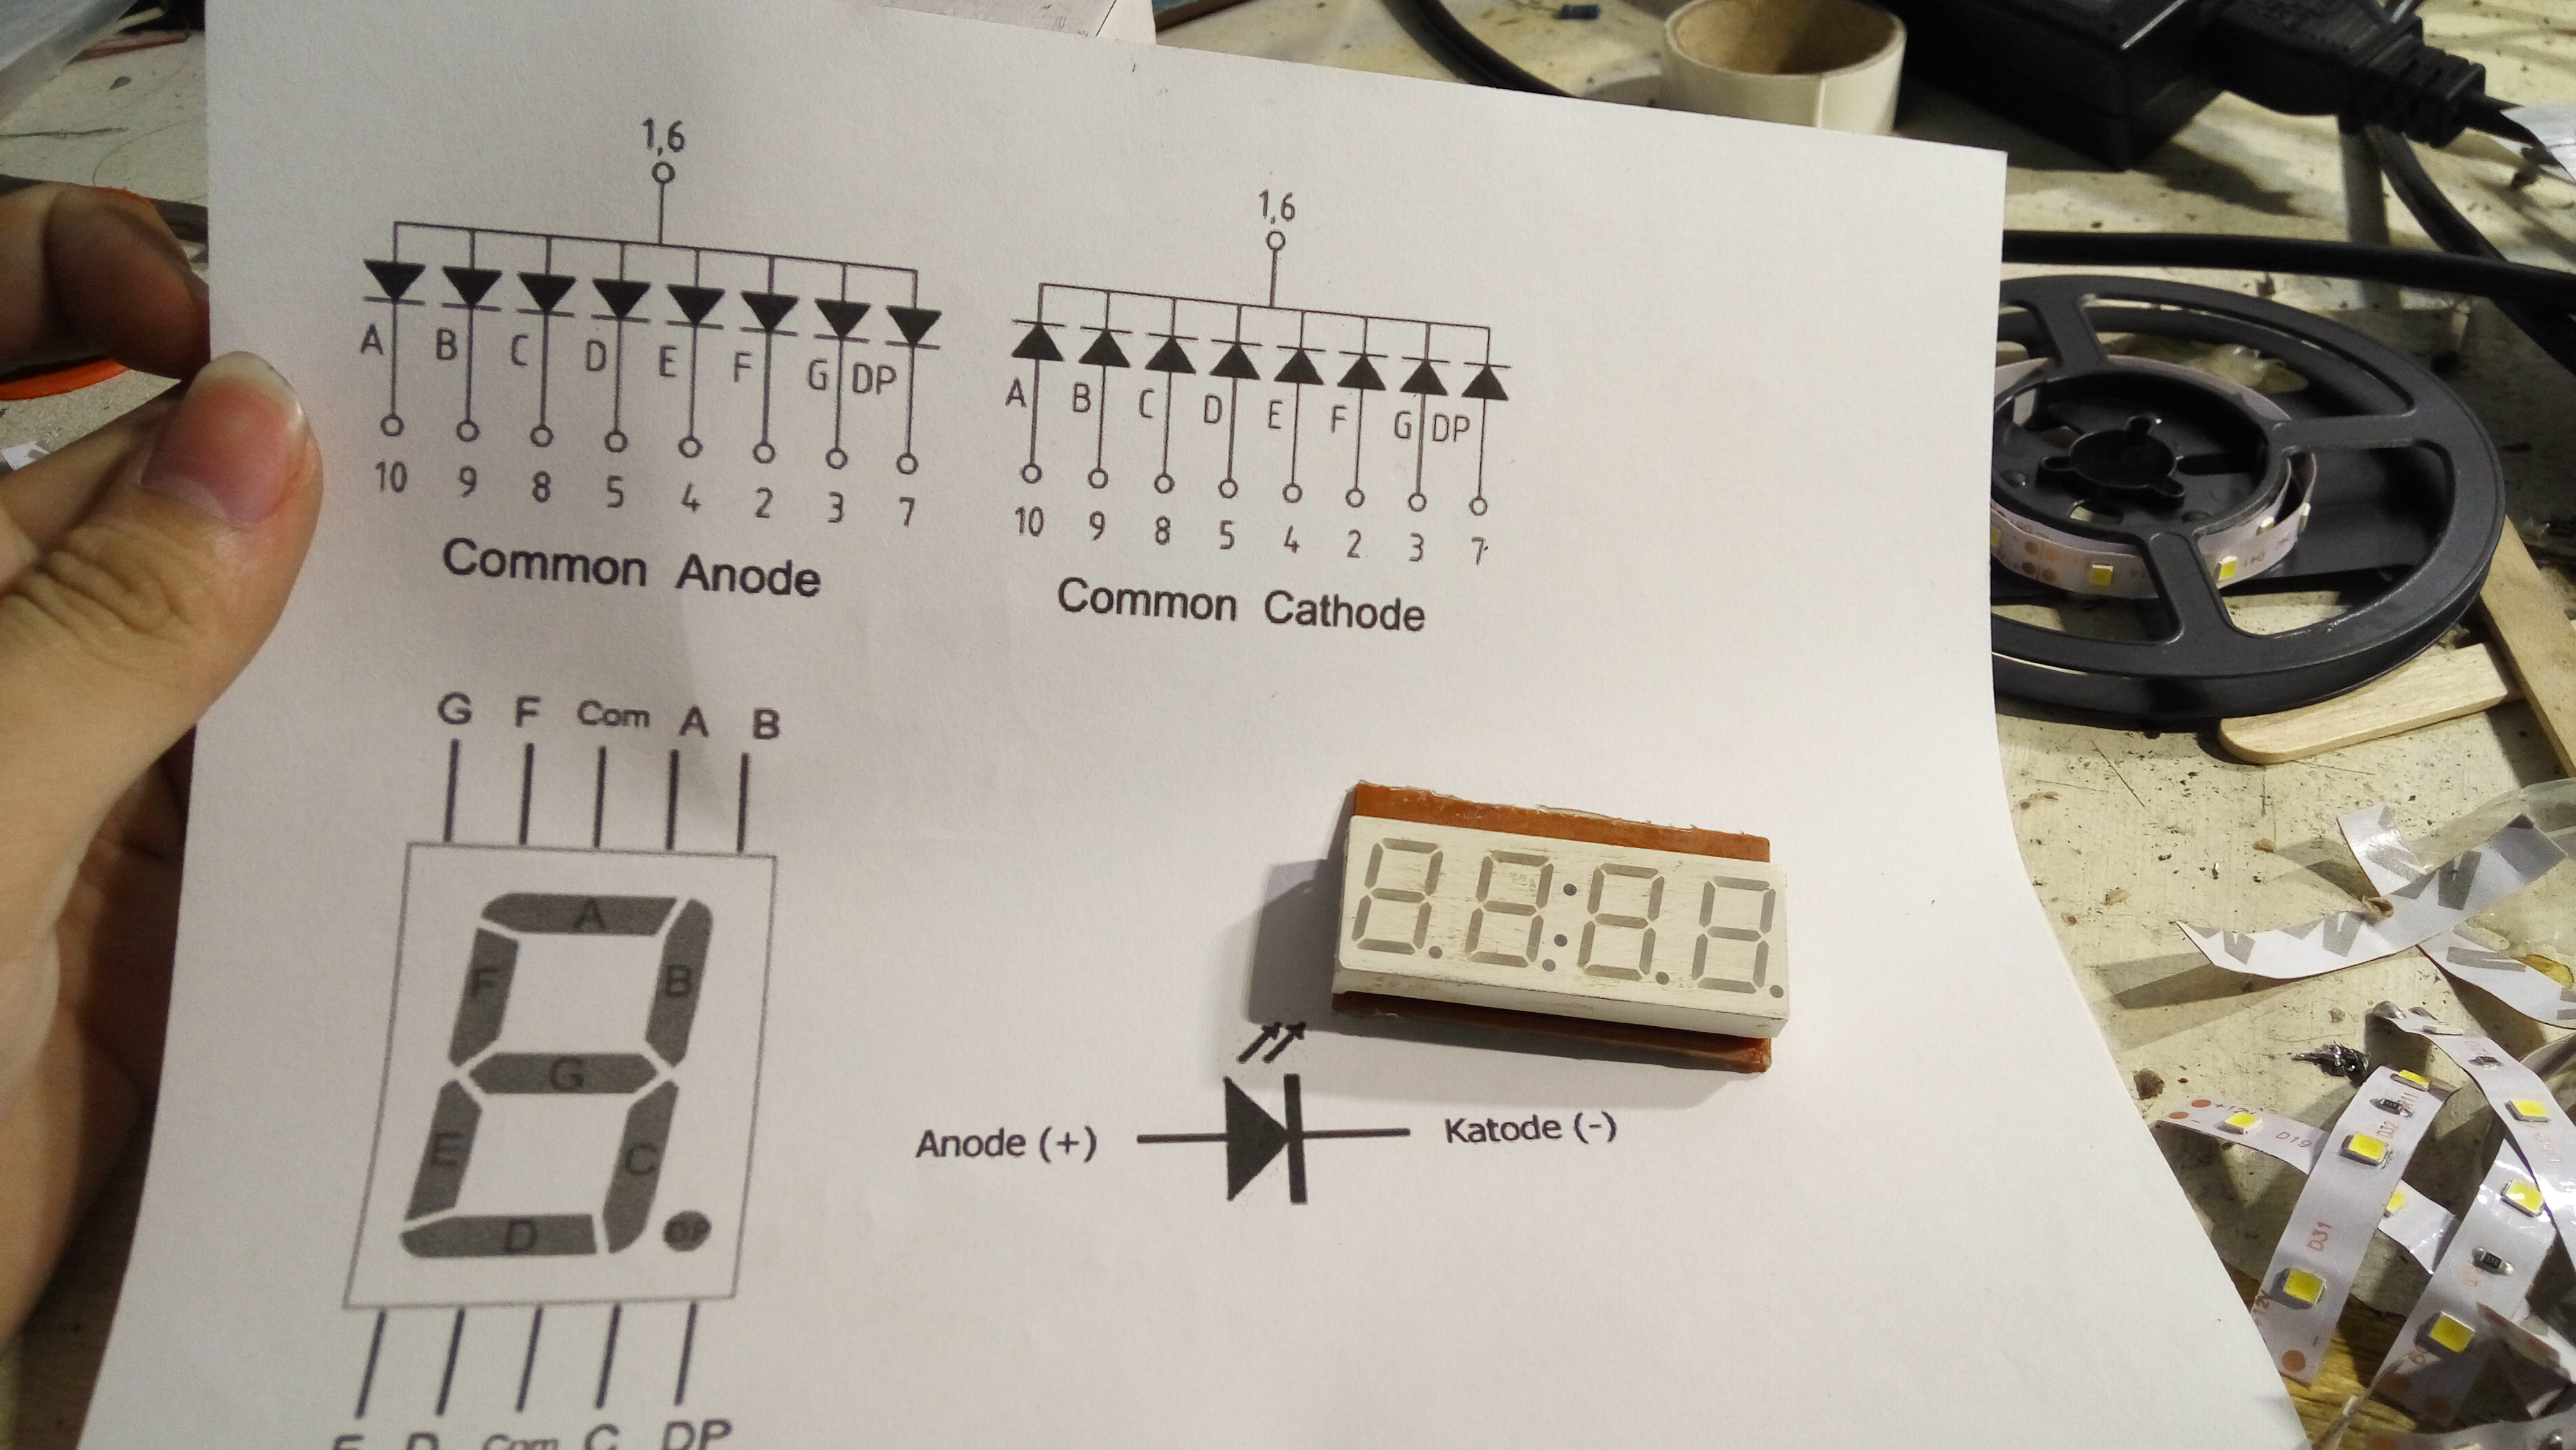 Picture of What 7 Segment Common Pin Type Do You Have? Anode or Cathode?